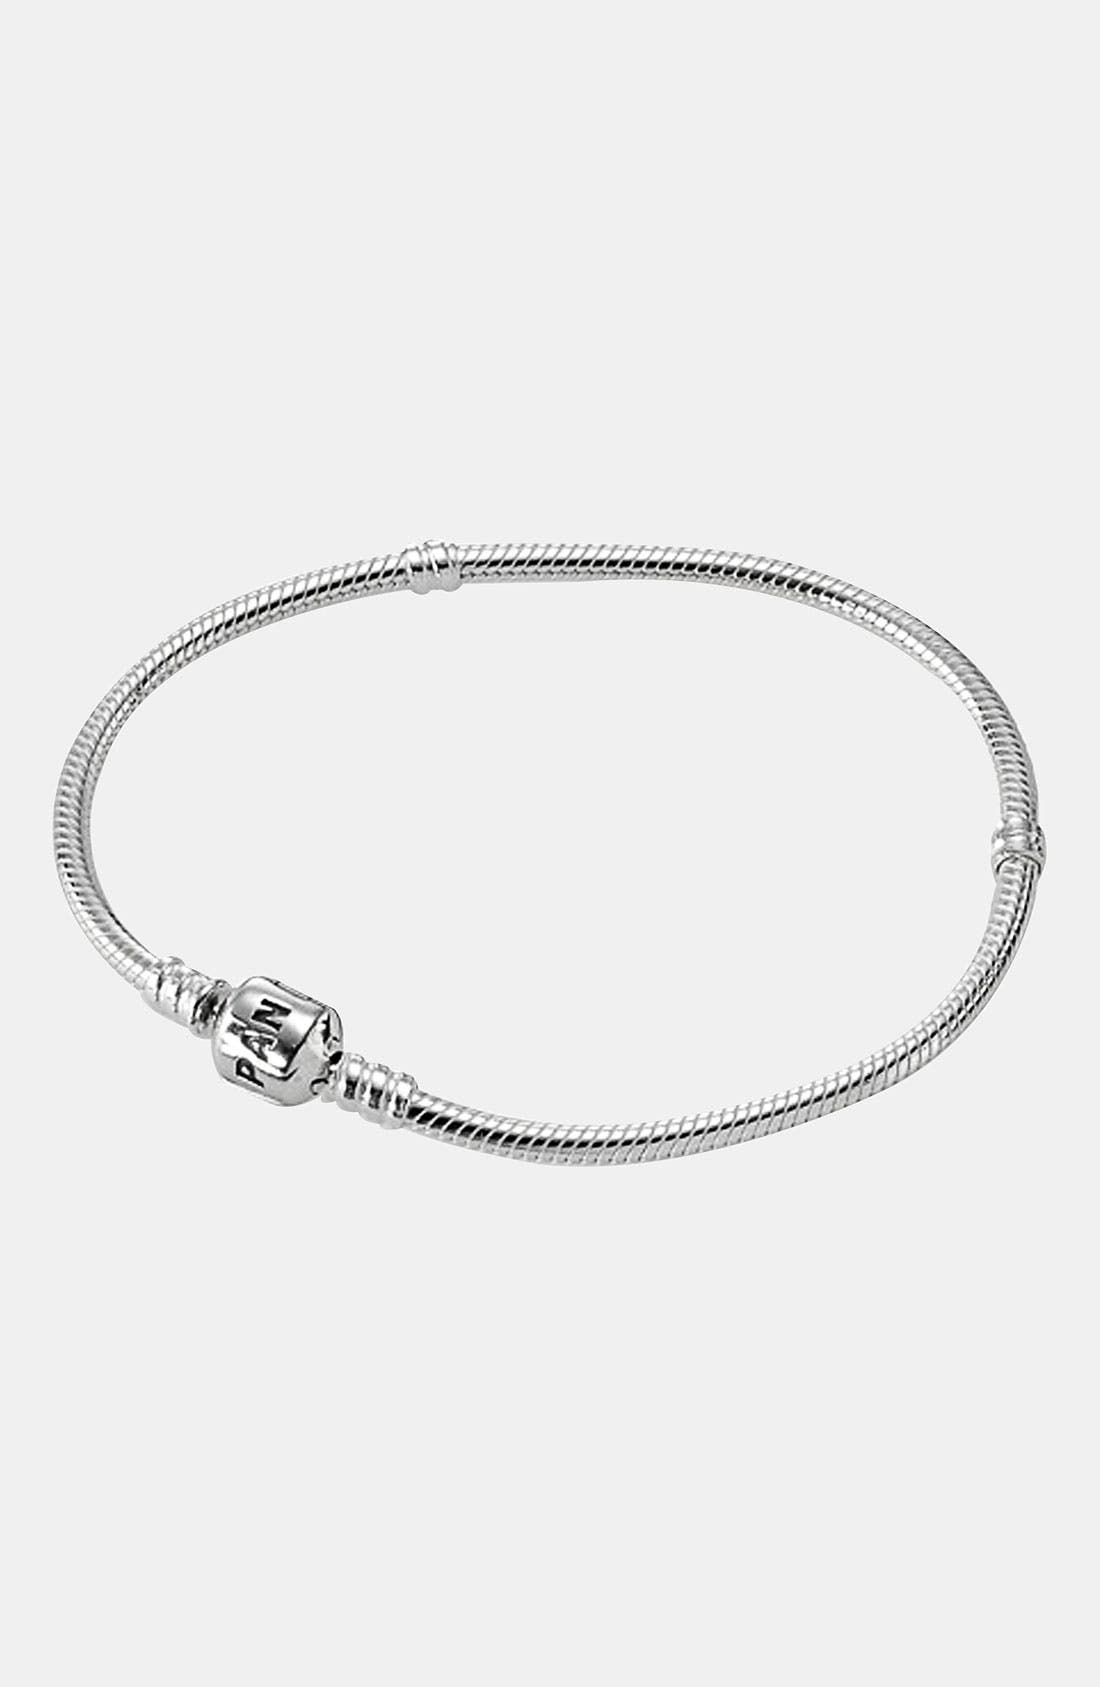 PANDORA Iconic Silver Charm Bracelet, Main, color, STERLING SILVER